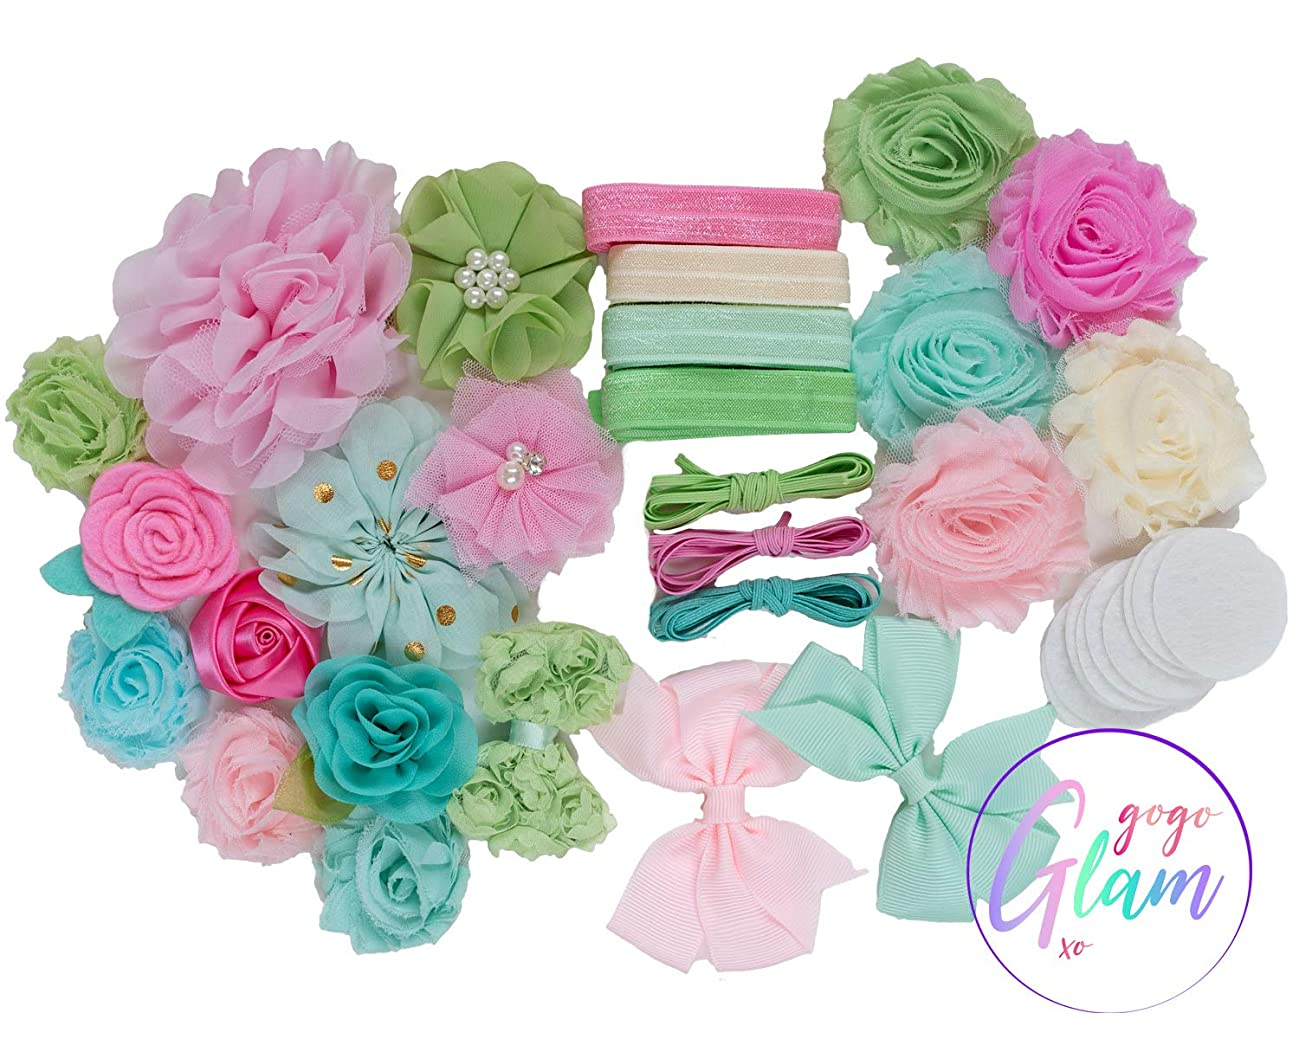 Baby Mine : DIY Headband Making Station Kit | Makes 14+ Unique Hair Accessories | Baby Shower Toddler Tween| Shabby Chiffon Craft Flowers | Pastel Pink, Mint Spring Green